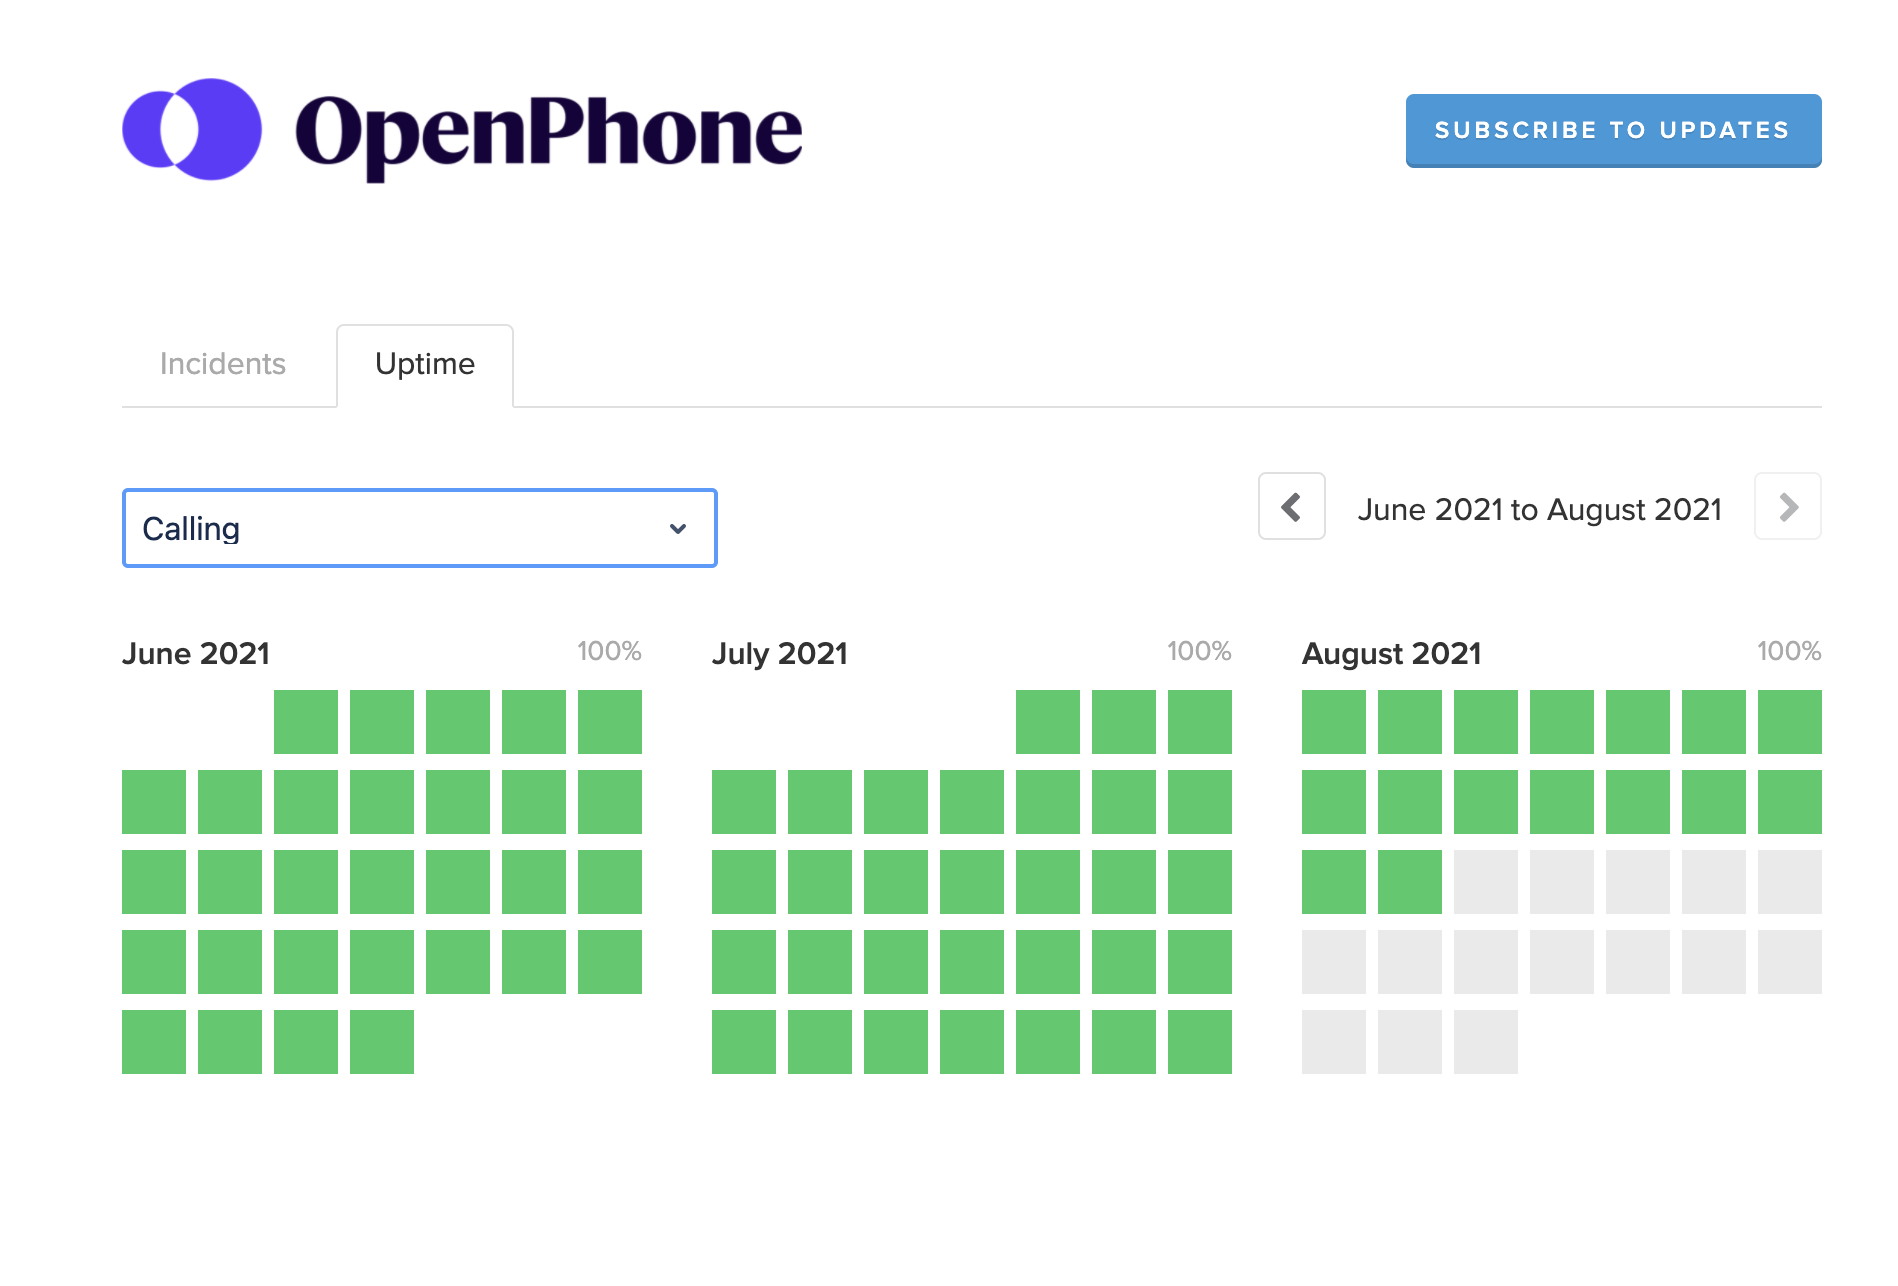 Uptime shown by day in OpenPhone